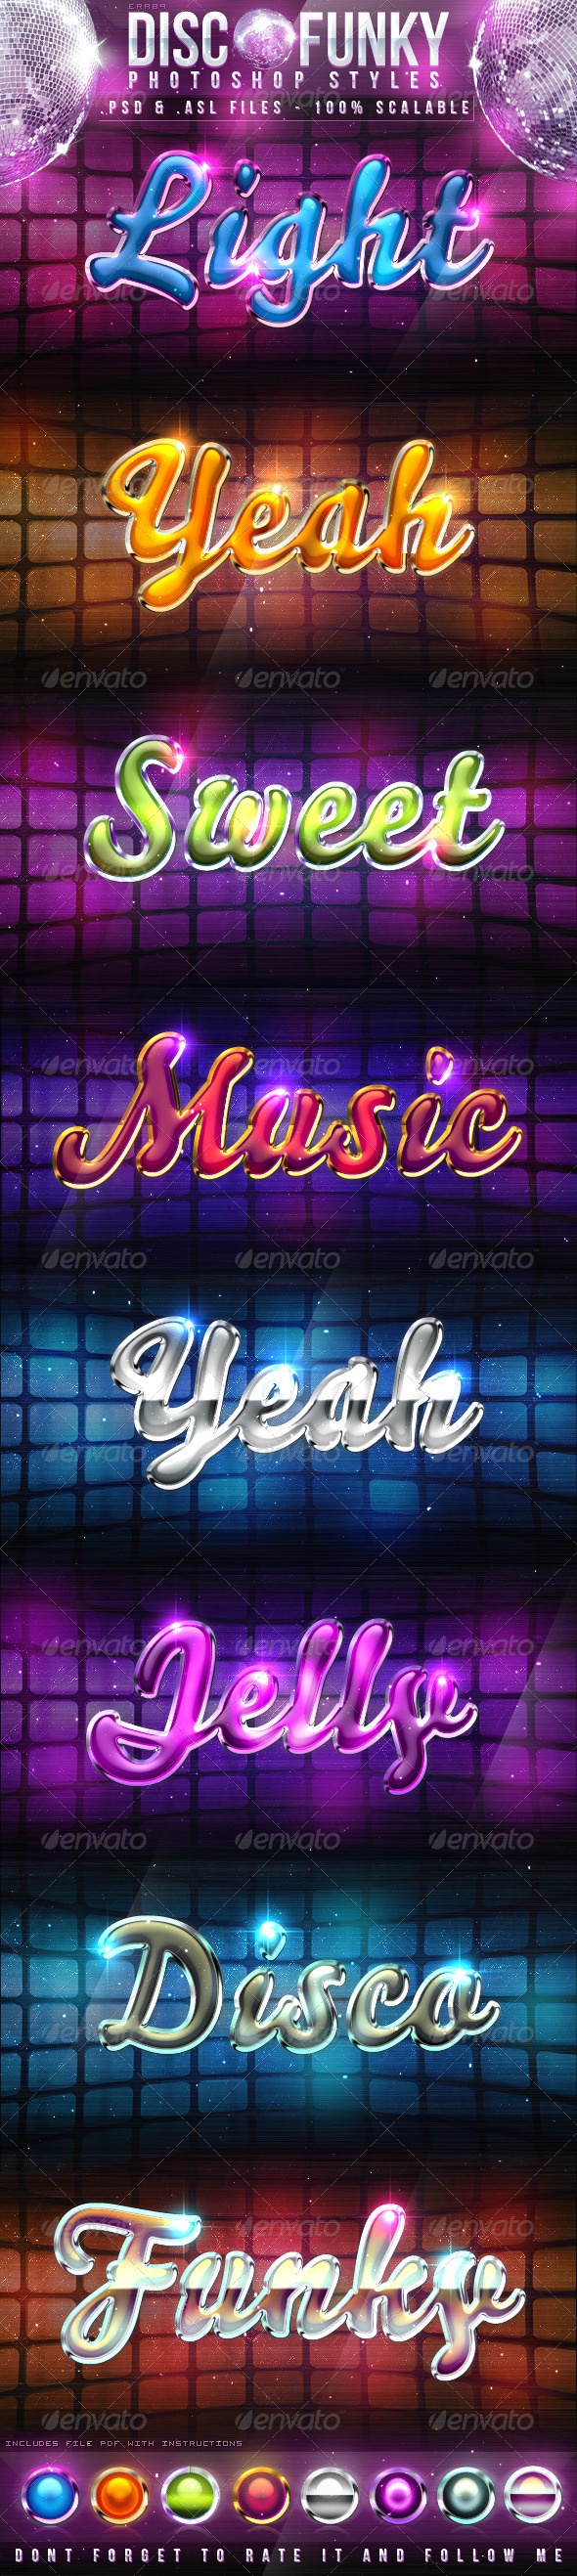 Disco Funky Photoshop Styles - Text Effects Styles